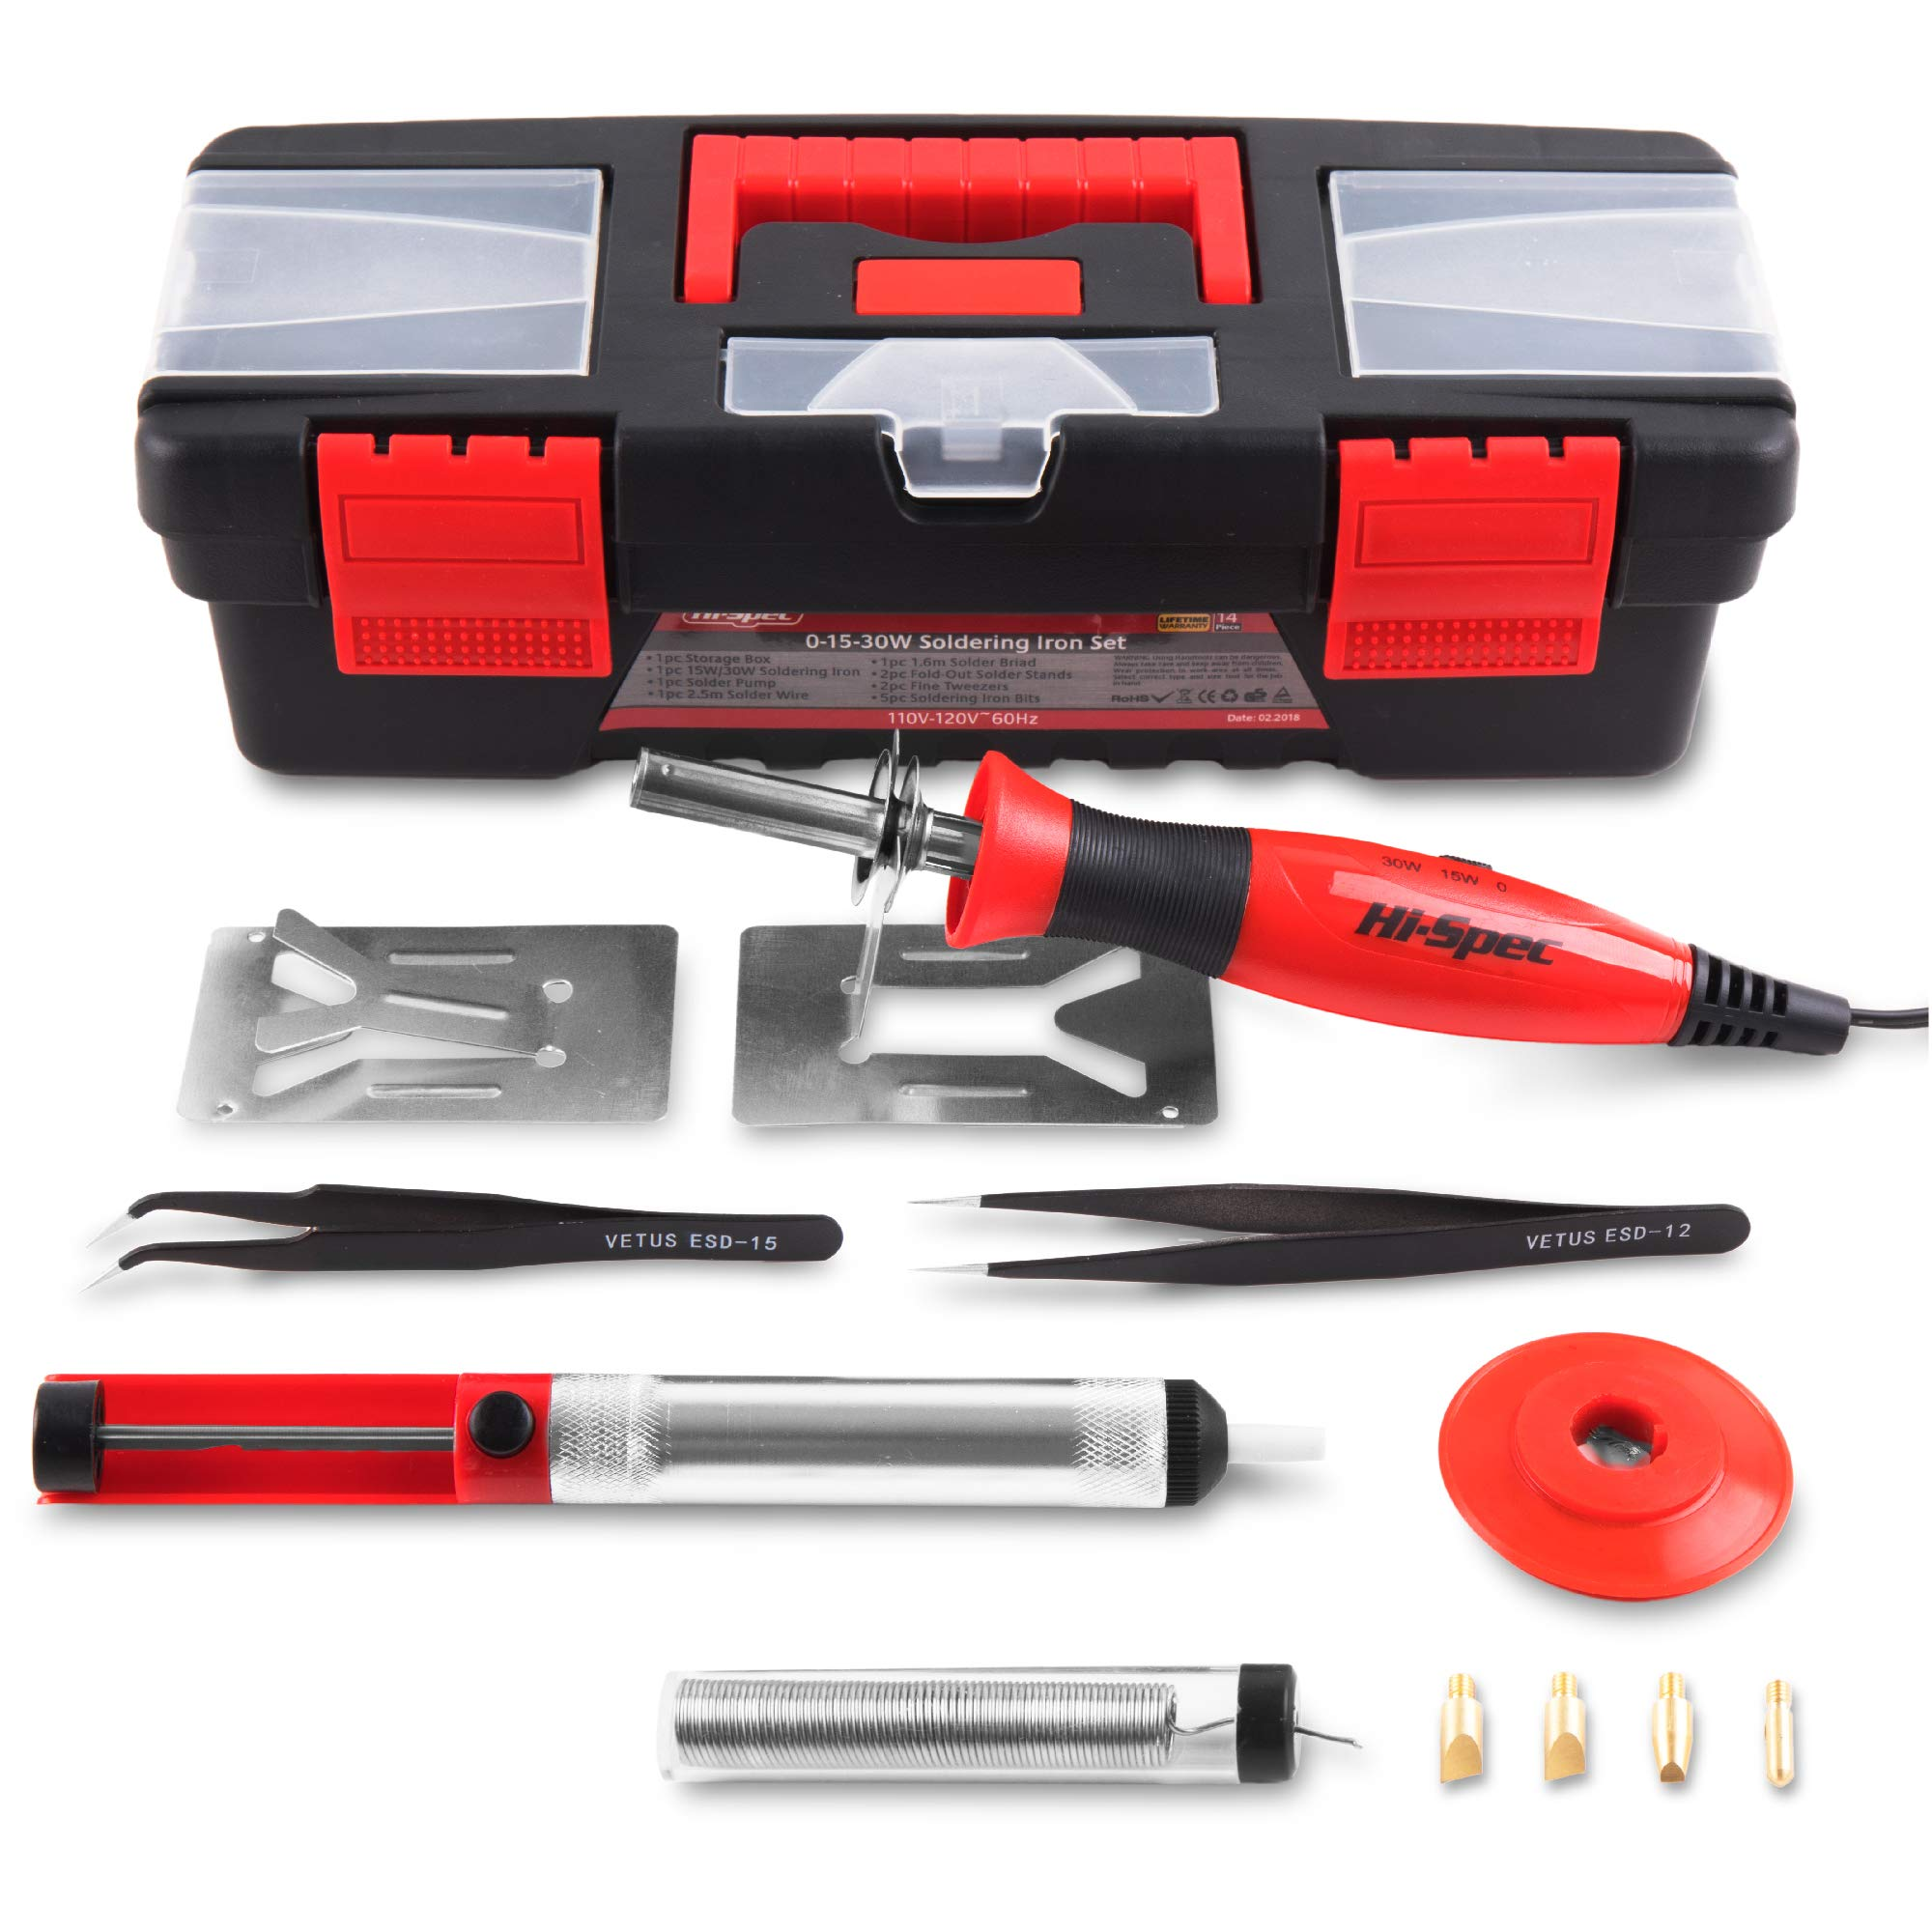 Hi-Spec 2-in-1 15/30 Watt Adjustable Temperature Soldering & Pyrography Wood Burning Set with Desoldering Pump, Wire, Wick/Braid, Antistatic Tweezers for Electronic Repairs, Jewelry, Hobby in Case